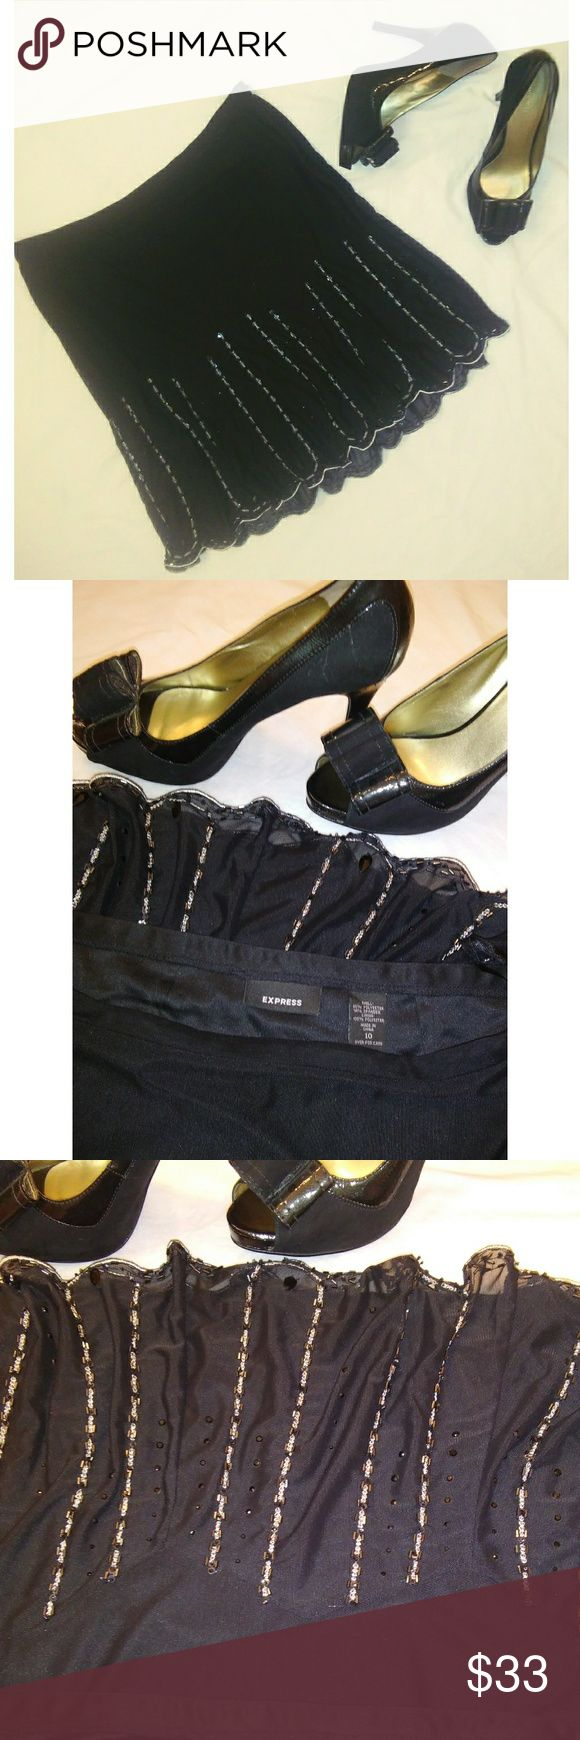 Stunning Express party skirt This amazing black Express skirt has beadwork and pleats in all the right places. Worn once and it was a great time for dancing! The Nine West heels in the picture are also available in my closet. Bundle bundle bundle Express Skirts